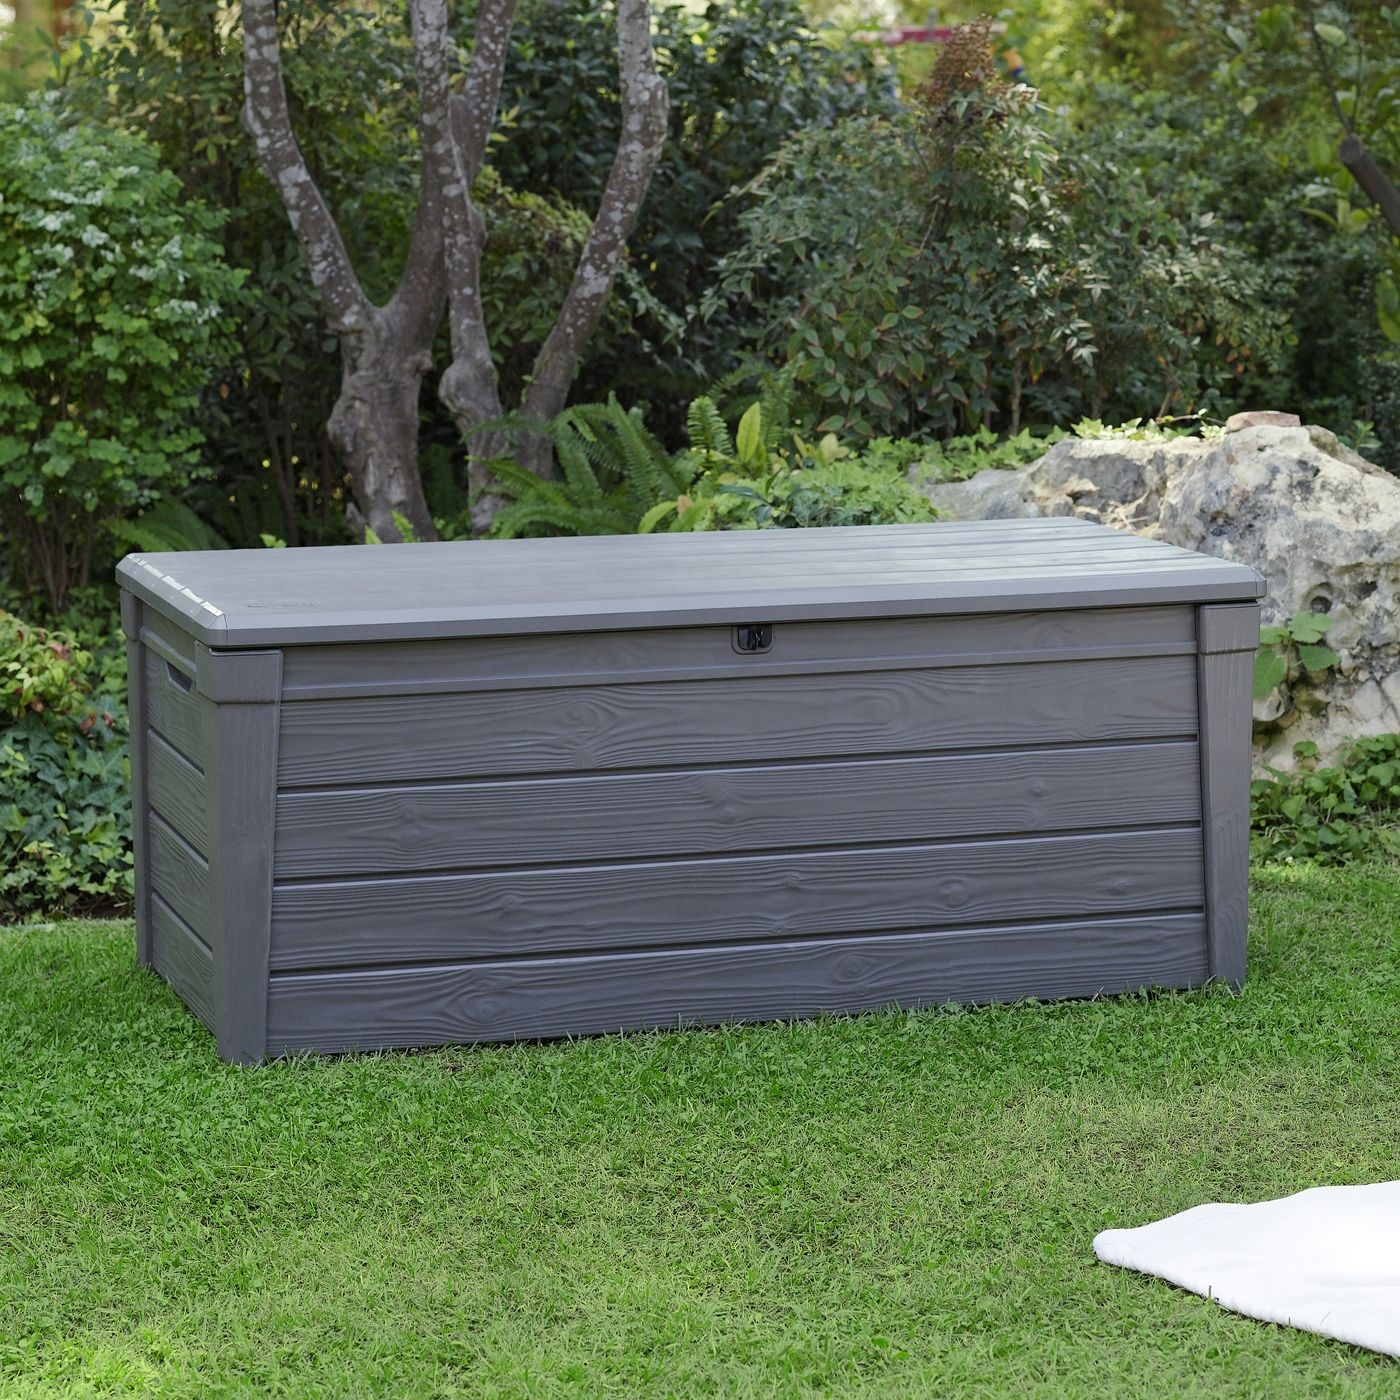 Storage Benches Keter 206042 Brightwood 120 Gallon Deck Box Outdoor Living Showroom